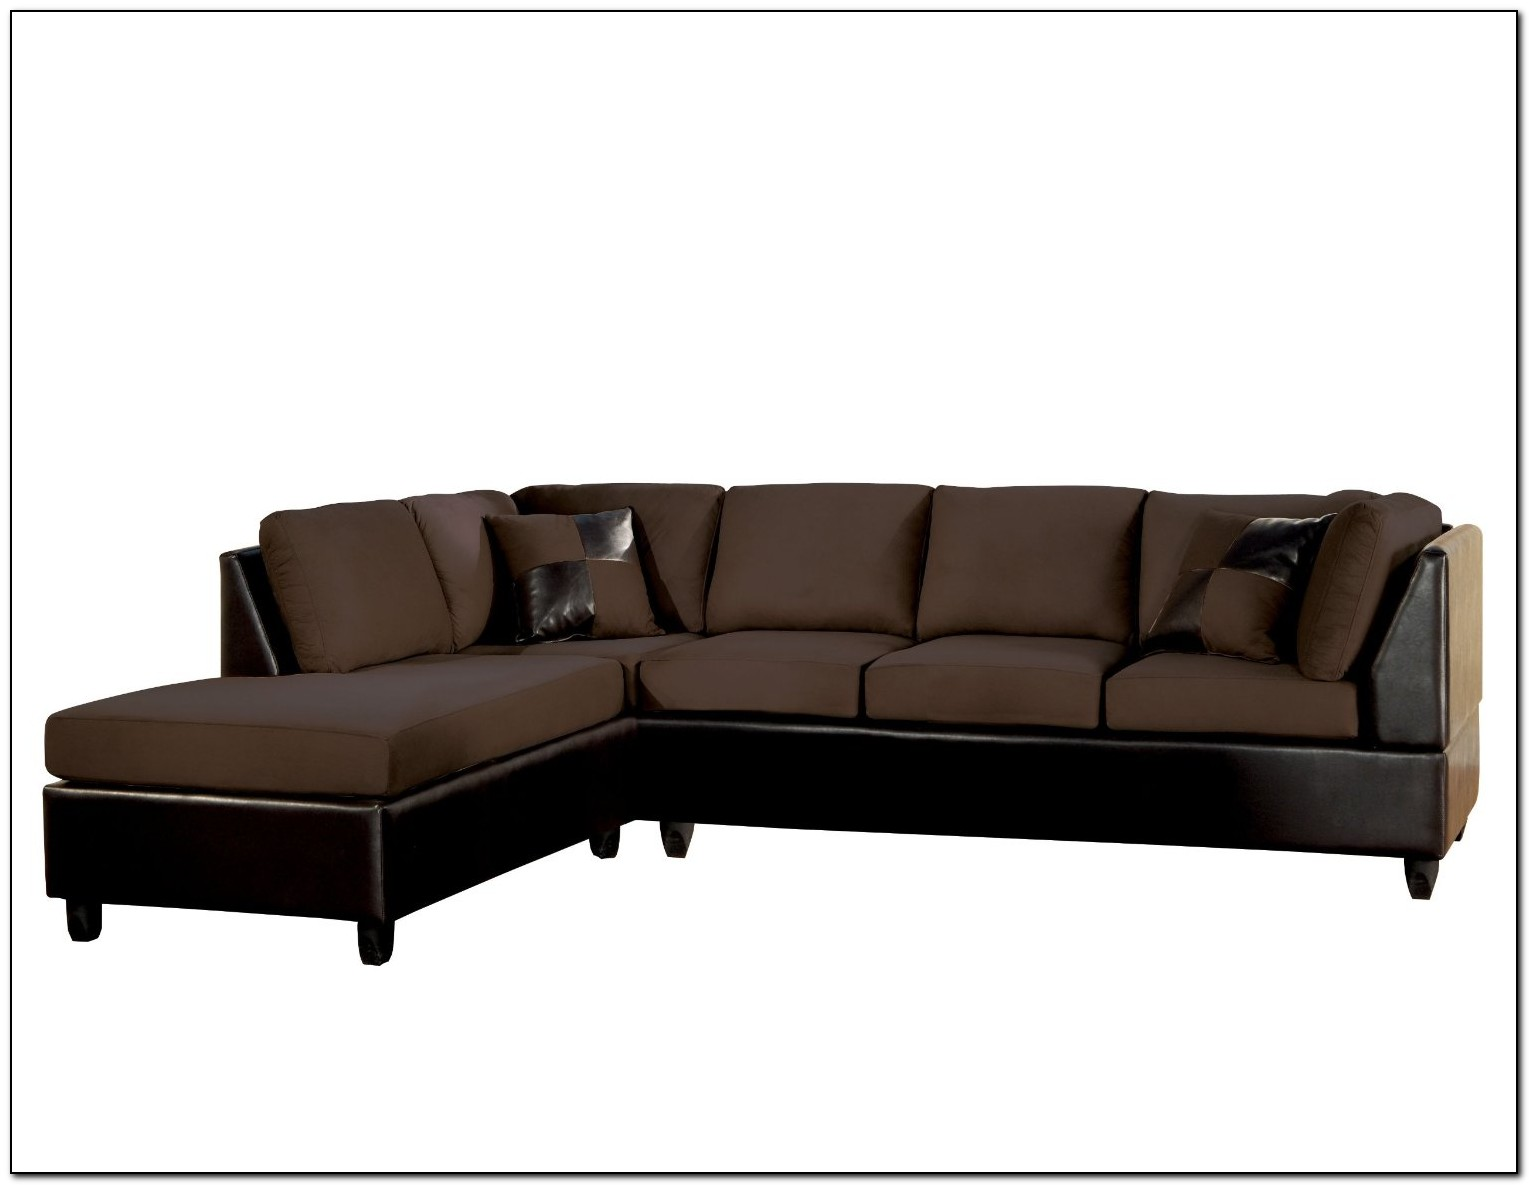 Sleeper Sectional Canada Sleeper Sectional Sofa Canada Sofa Home Design Ideas